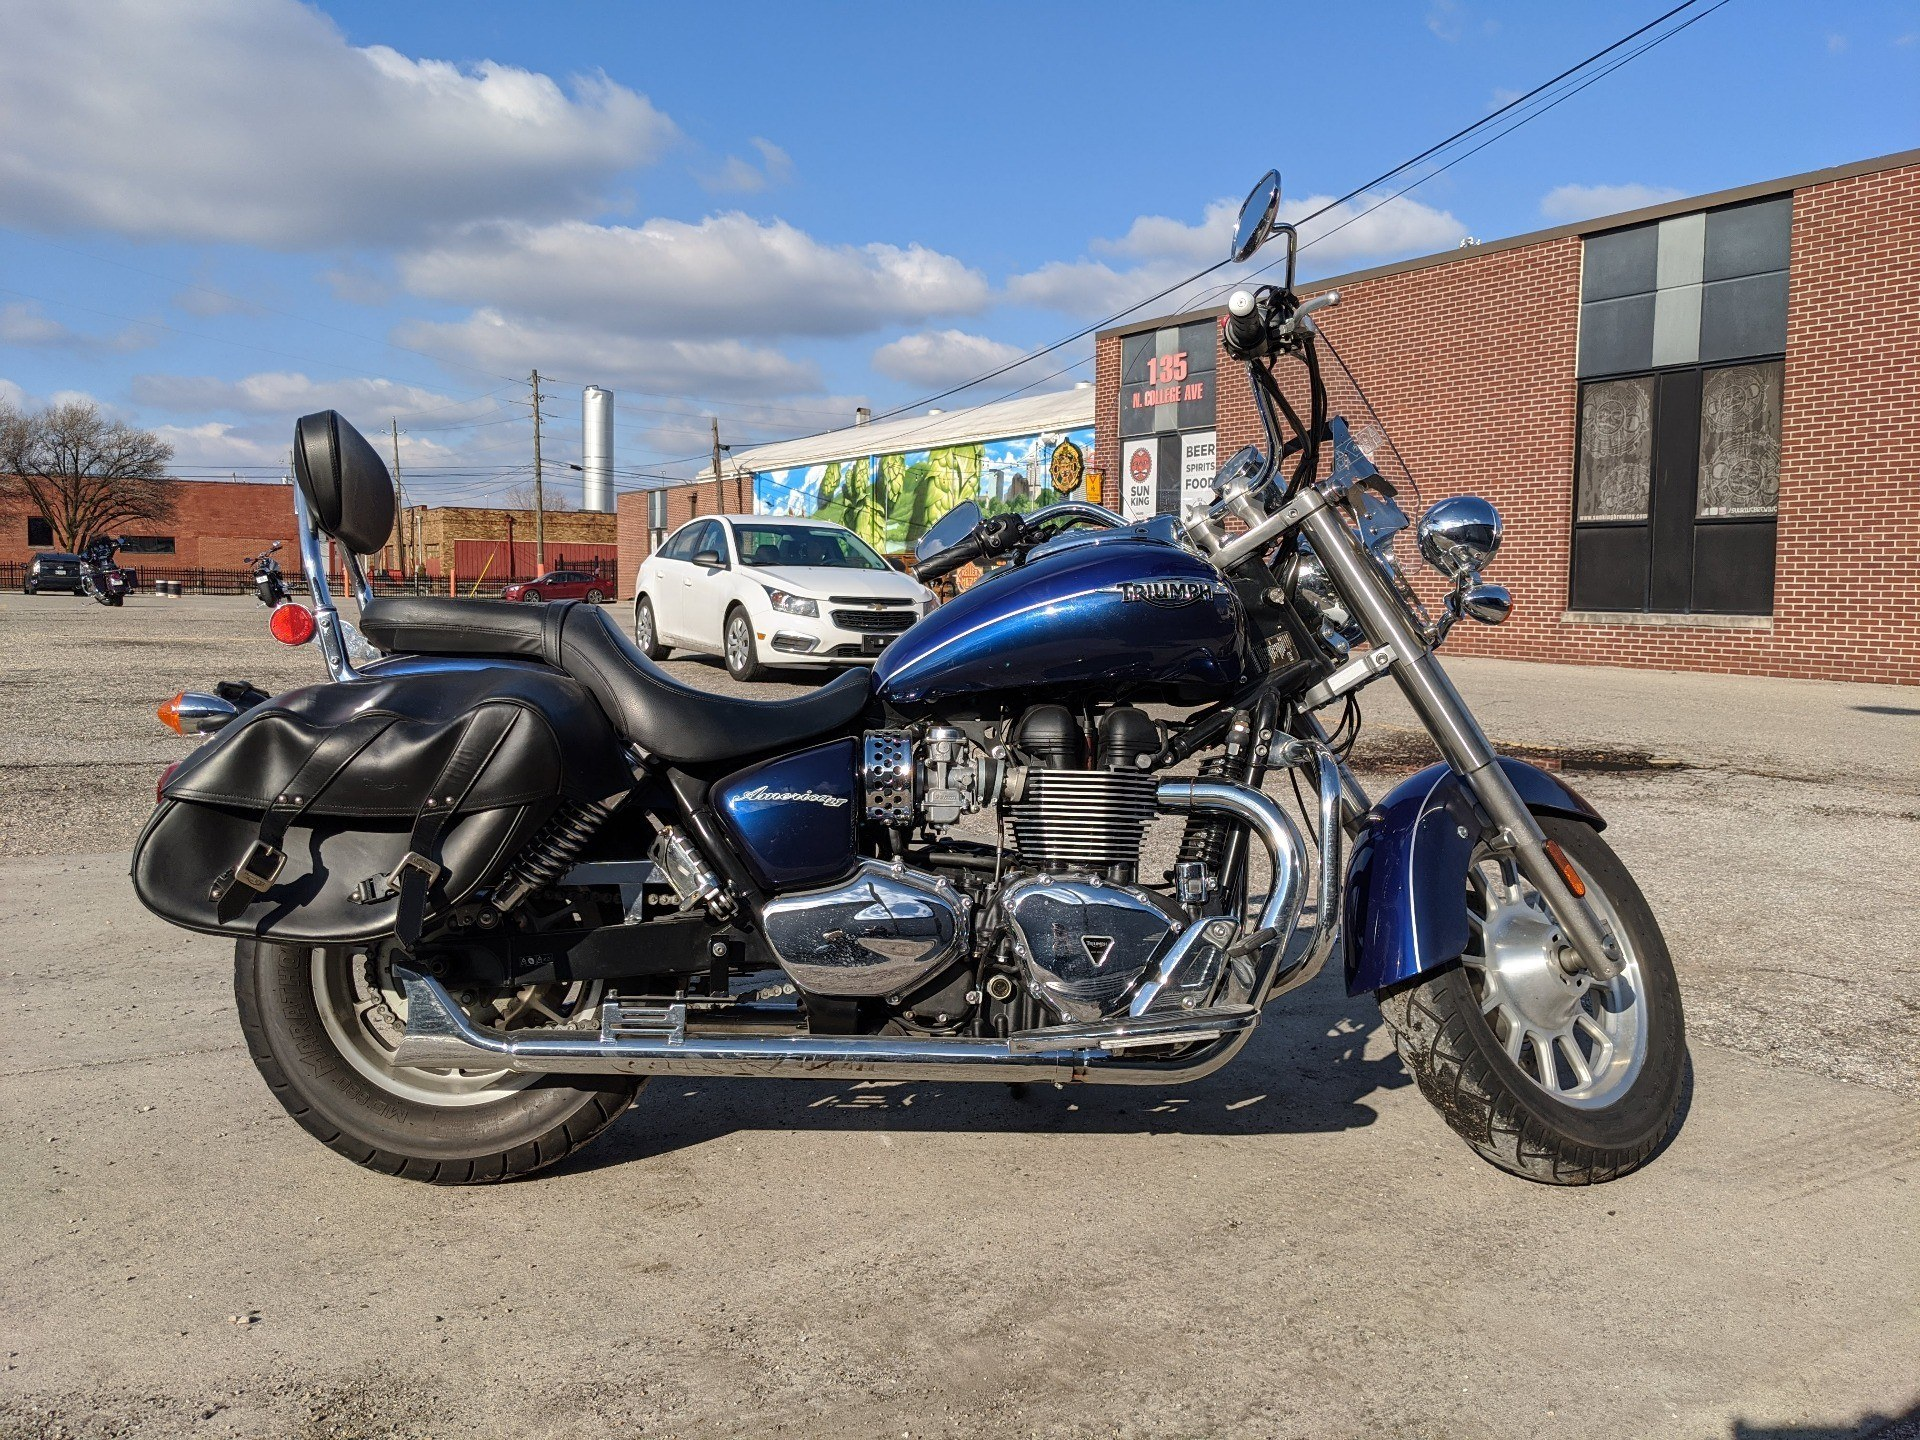 2009 Kawasaki Vulcan 900 Classic LT in Indianapolis, Indiana - Photo 11